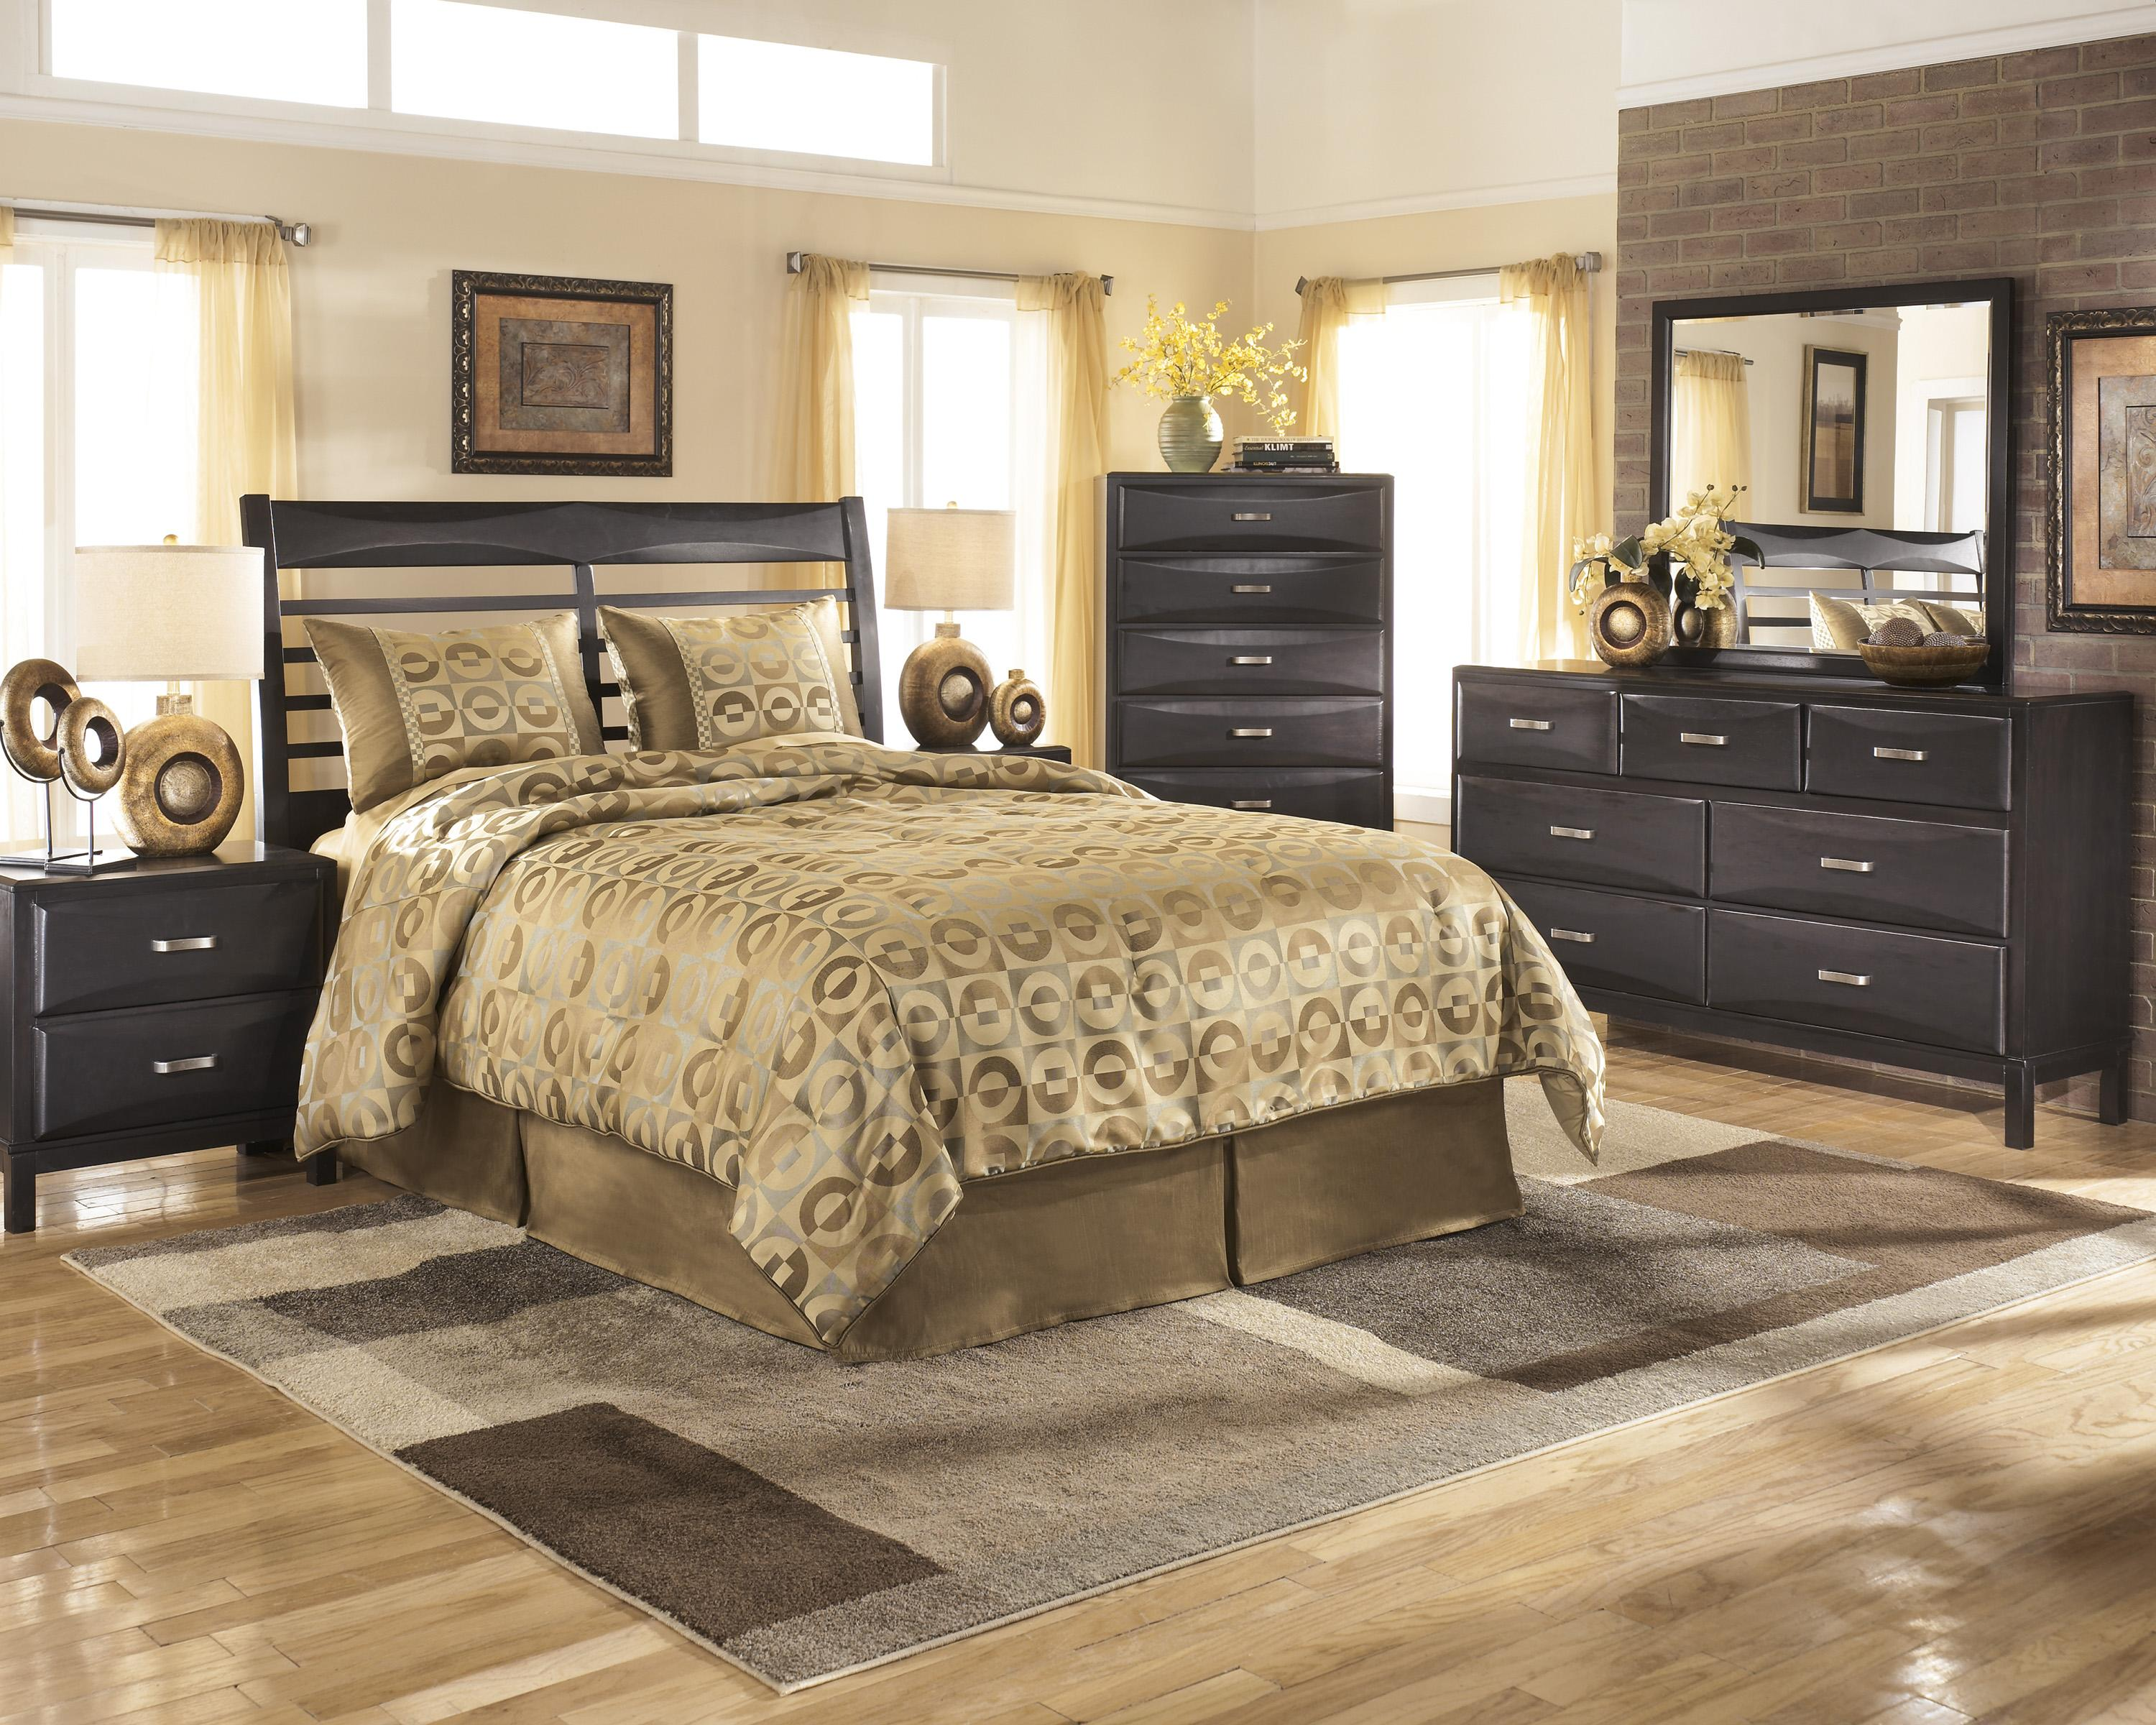 Ashley Furniture Kira Queen Bedroom Group - Item Number: B473 Q Bedroom Group 2